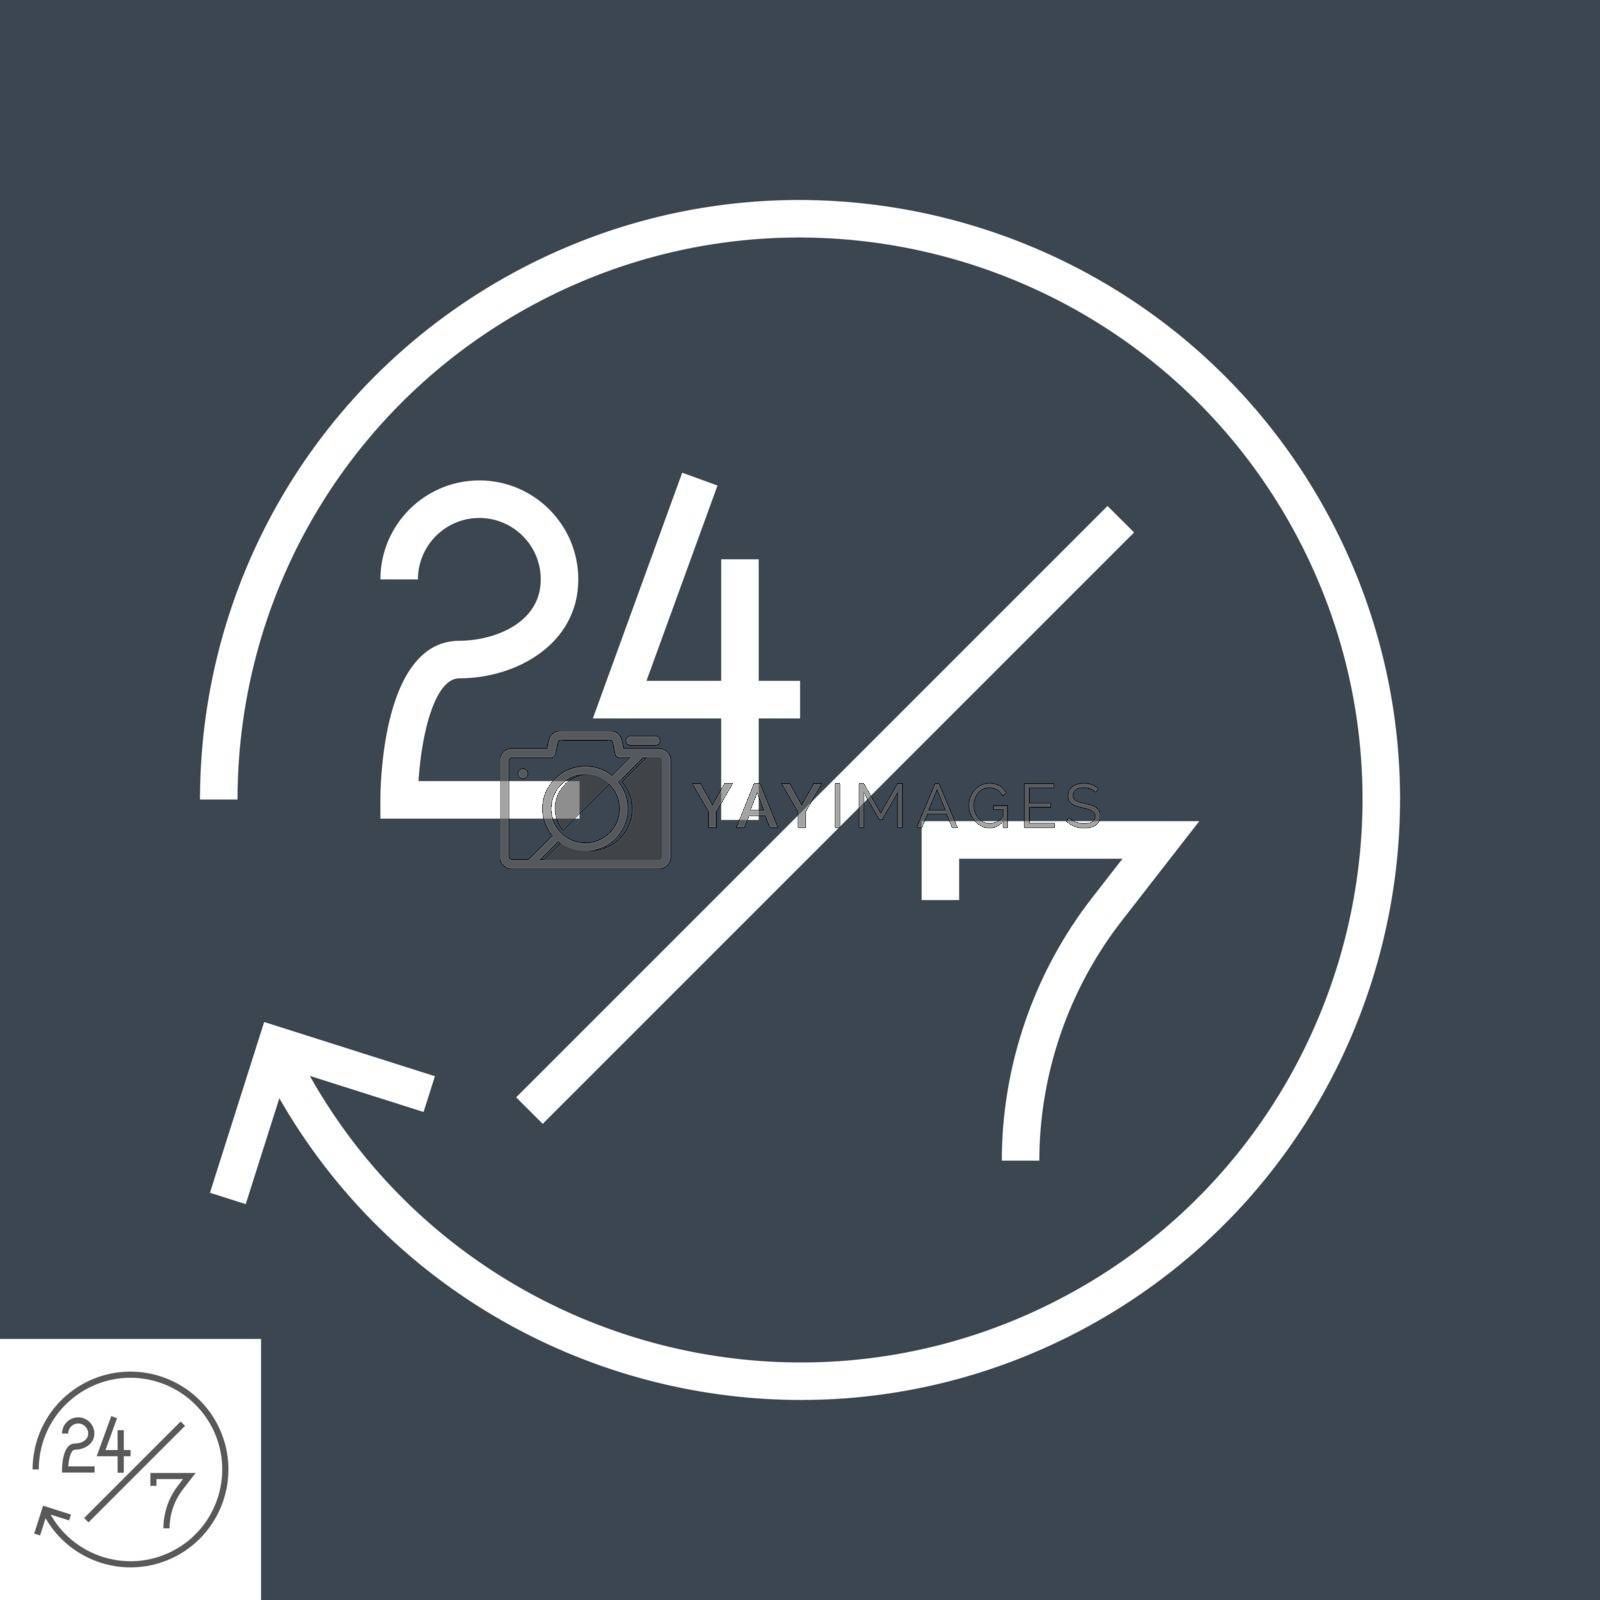 Steady Services 24/7 Thin Line Vector Icon. Flat icon isolated on the black background. Editable EPS file. Vector illustration.